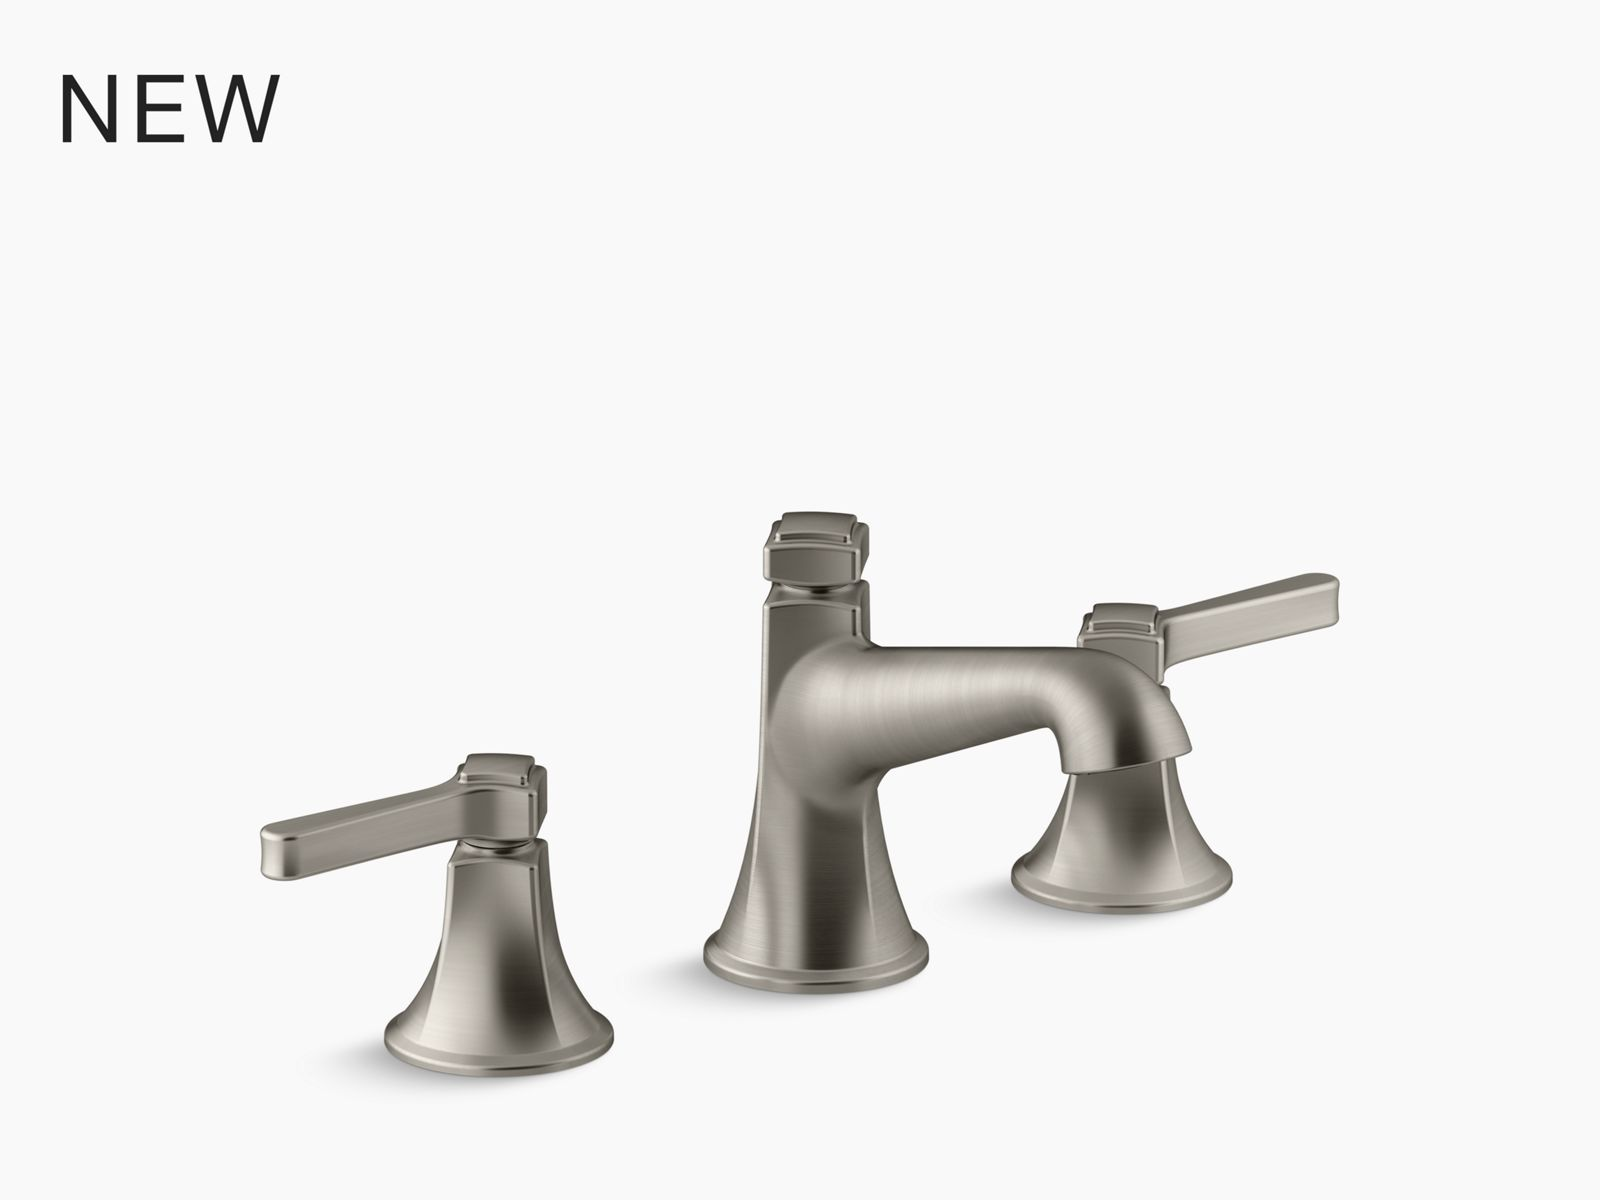 simplice kitchen sink faucet with 15 3 8 pull down spout